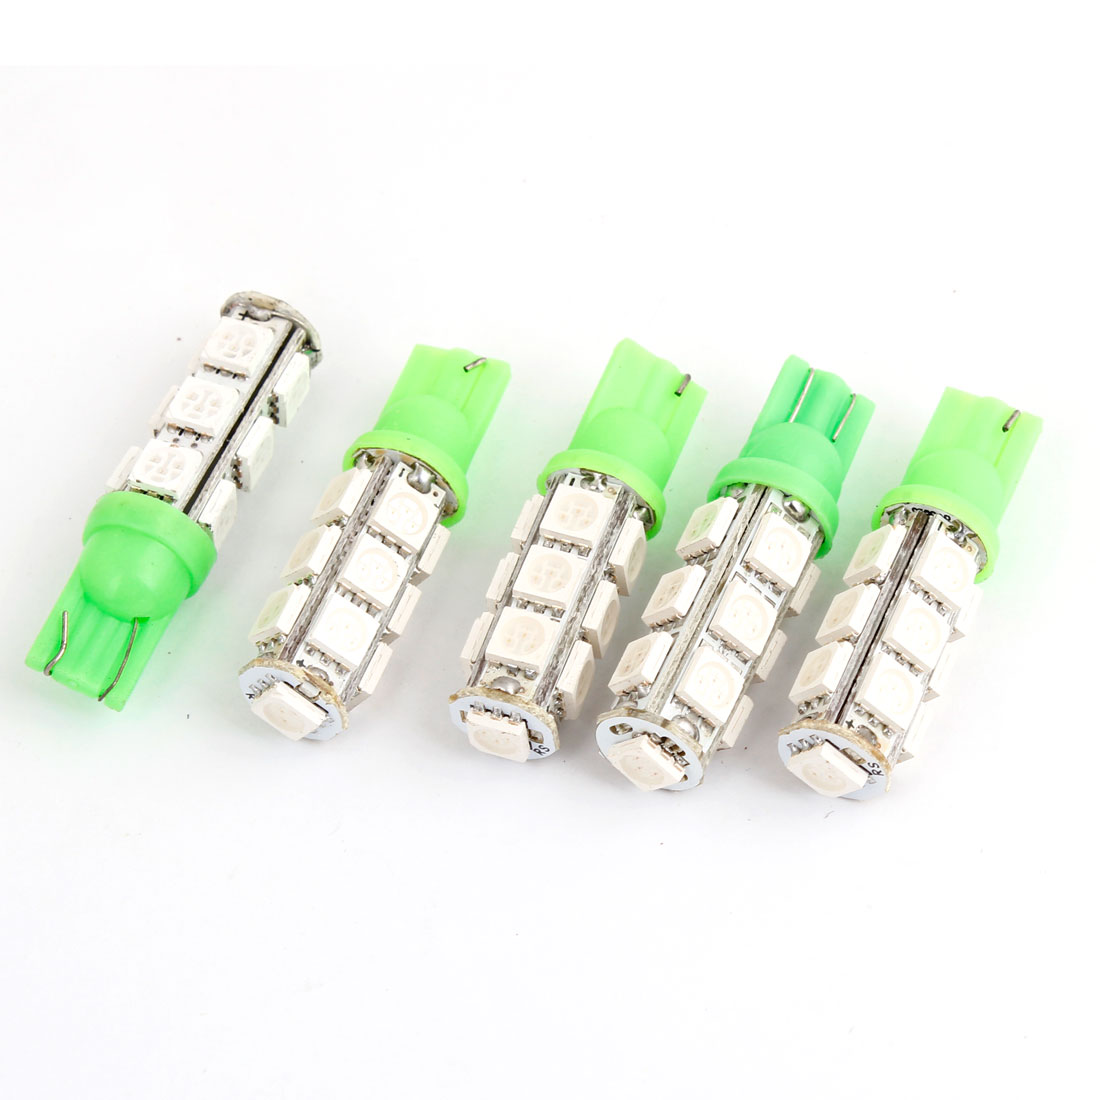 T10 194 168 W5W Green 5050 13-SMD LED Car Light Lamp Bulbs 12V 5pcs